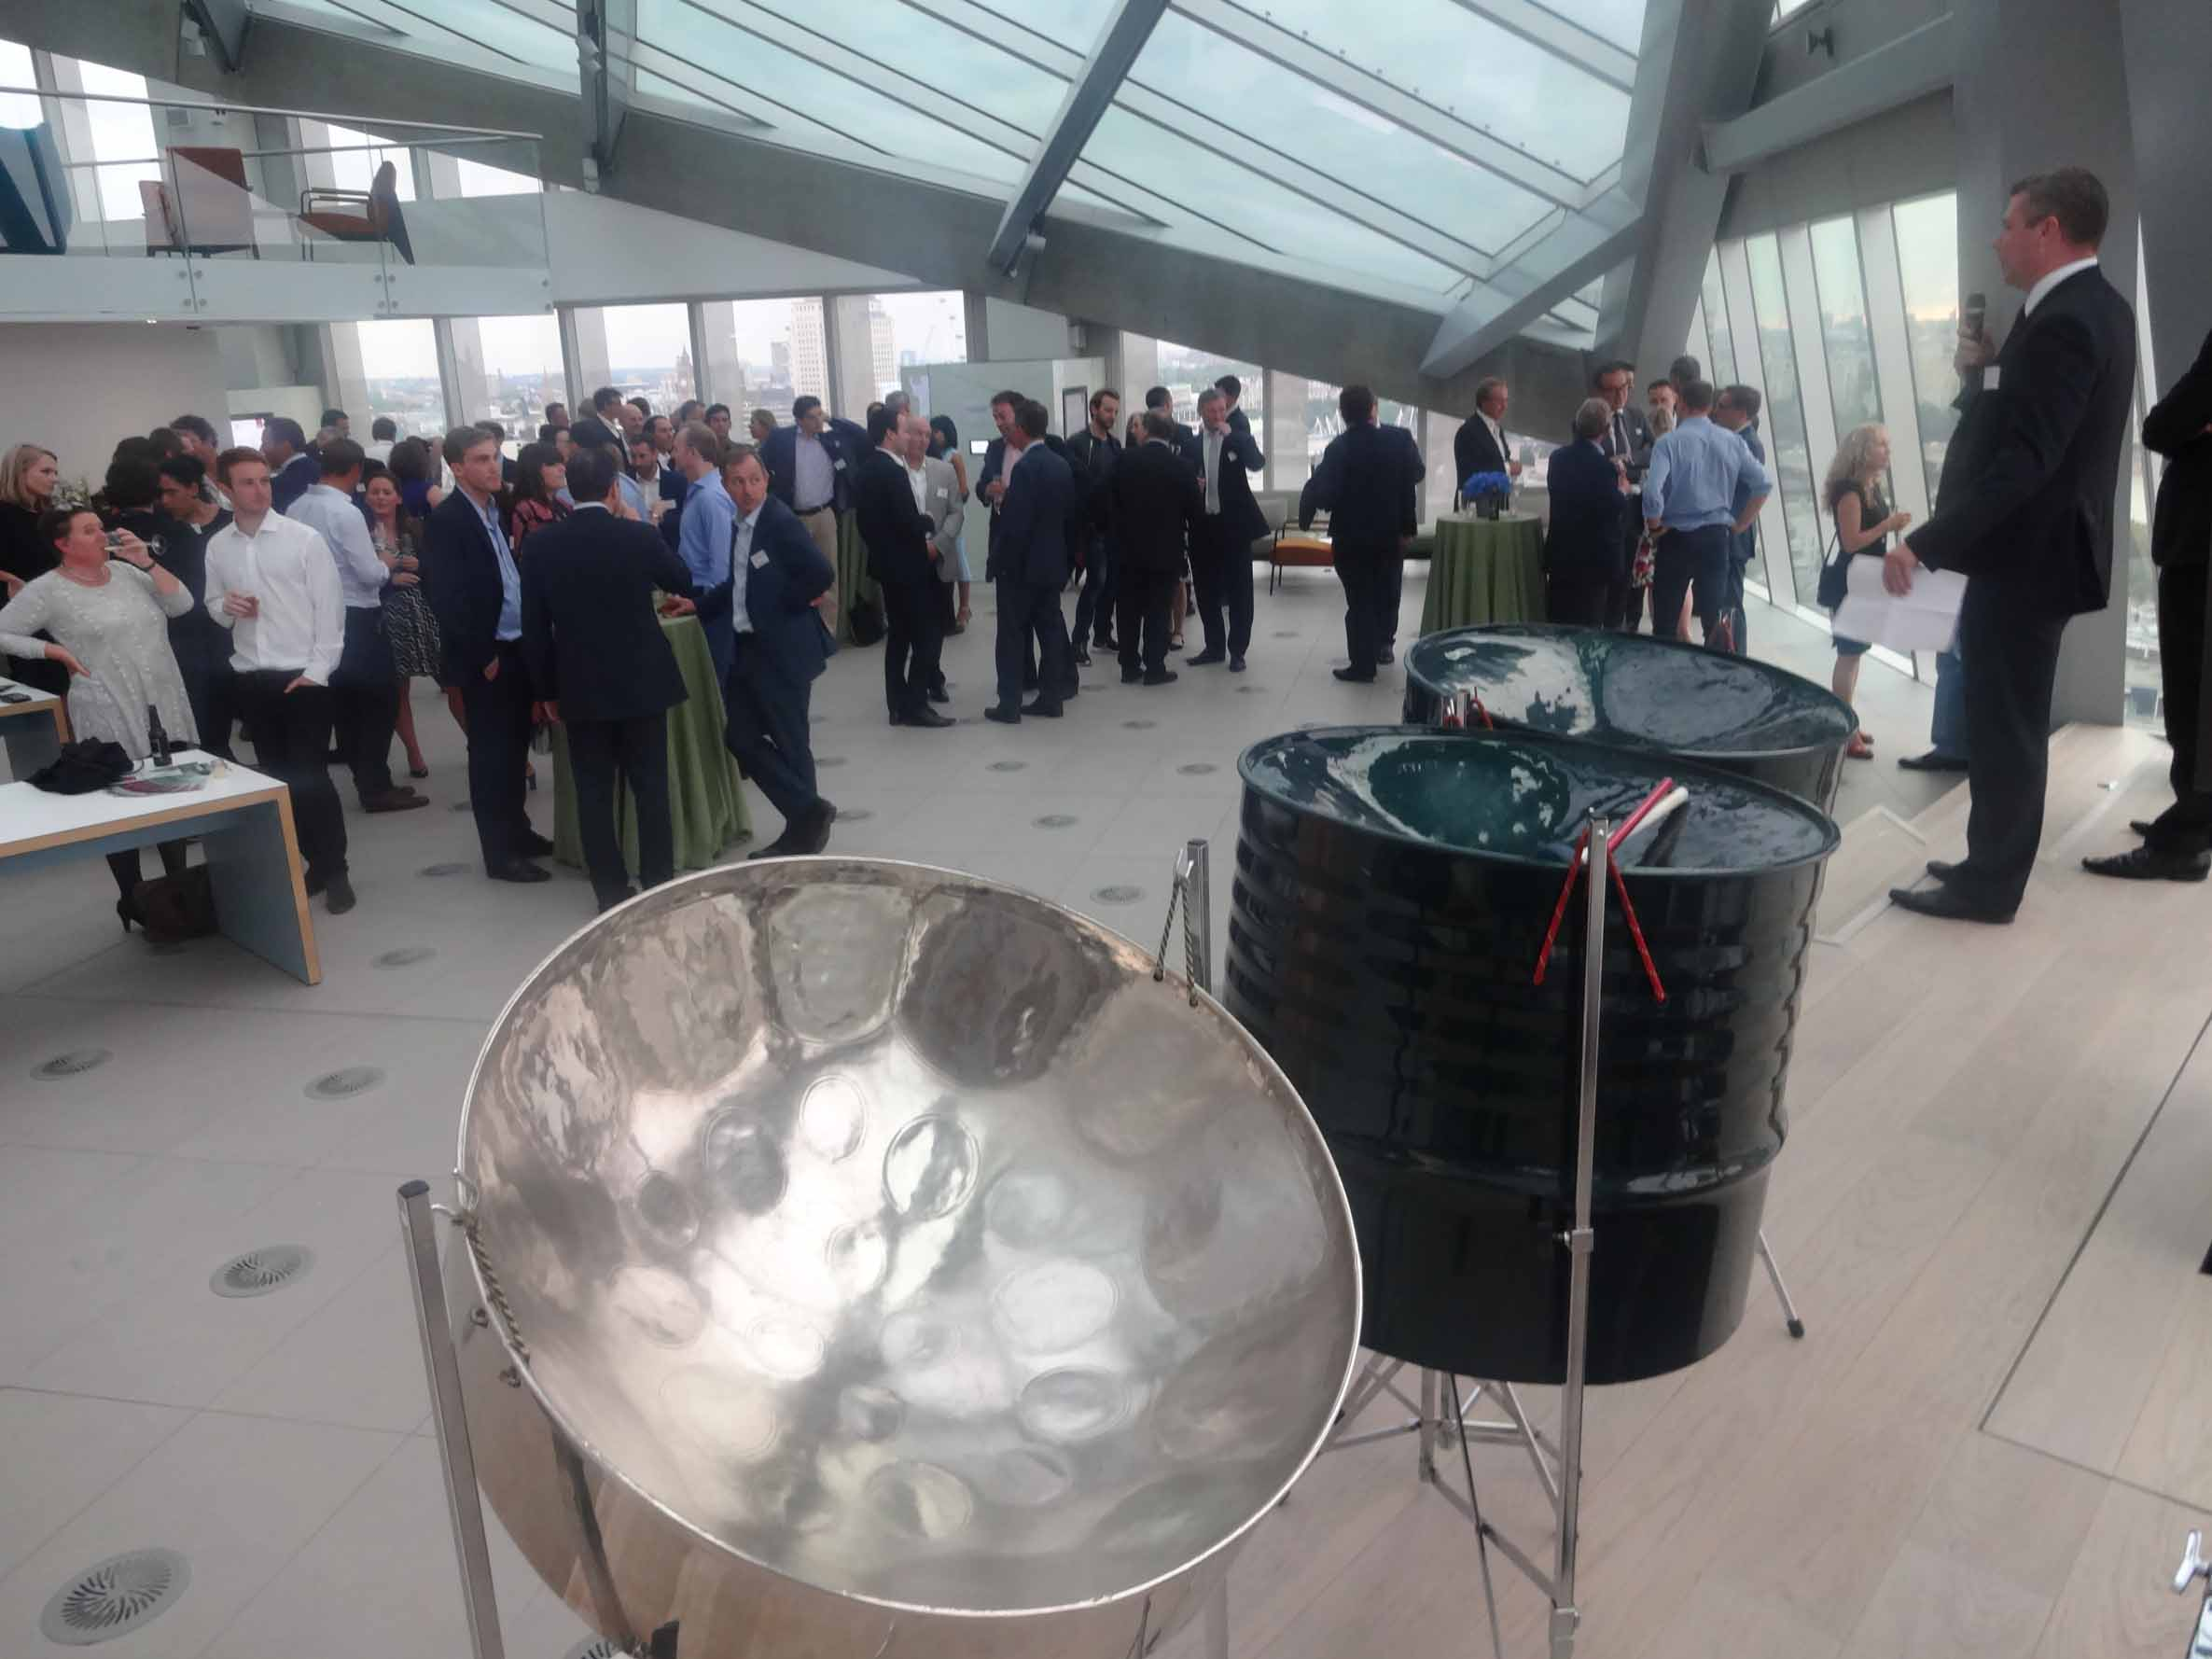 entertainment for office parties london party ideas london entertainment for office party westminster entertainment for office parties london live band for office